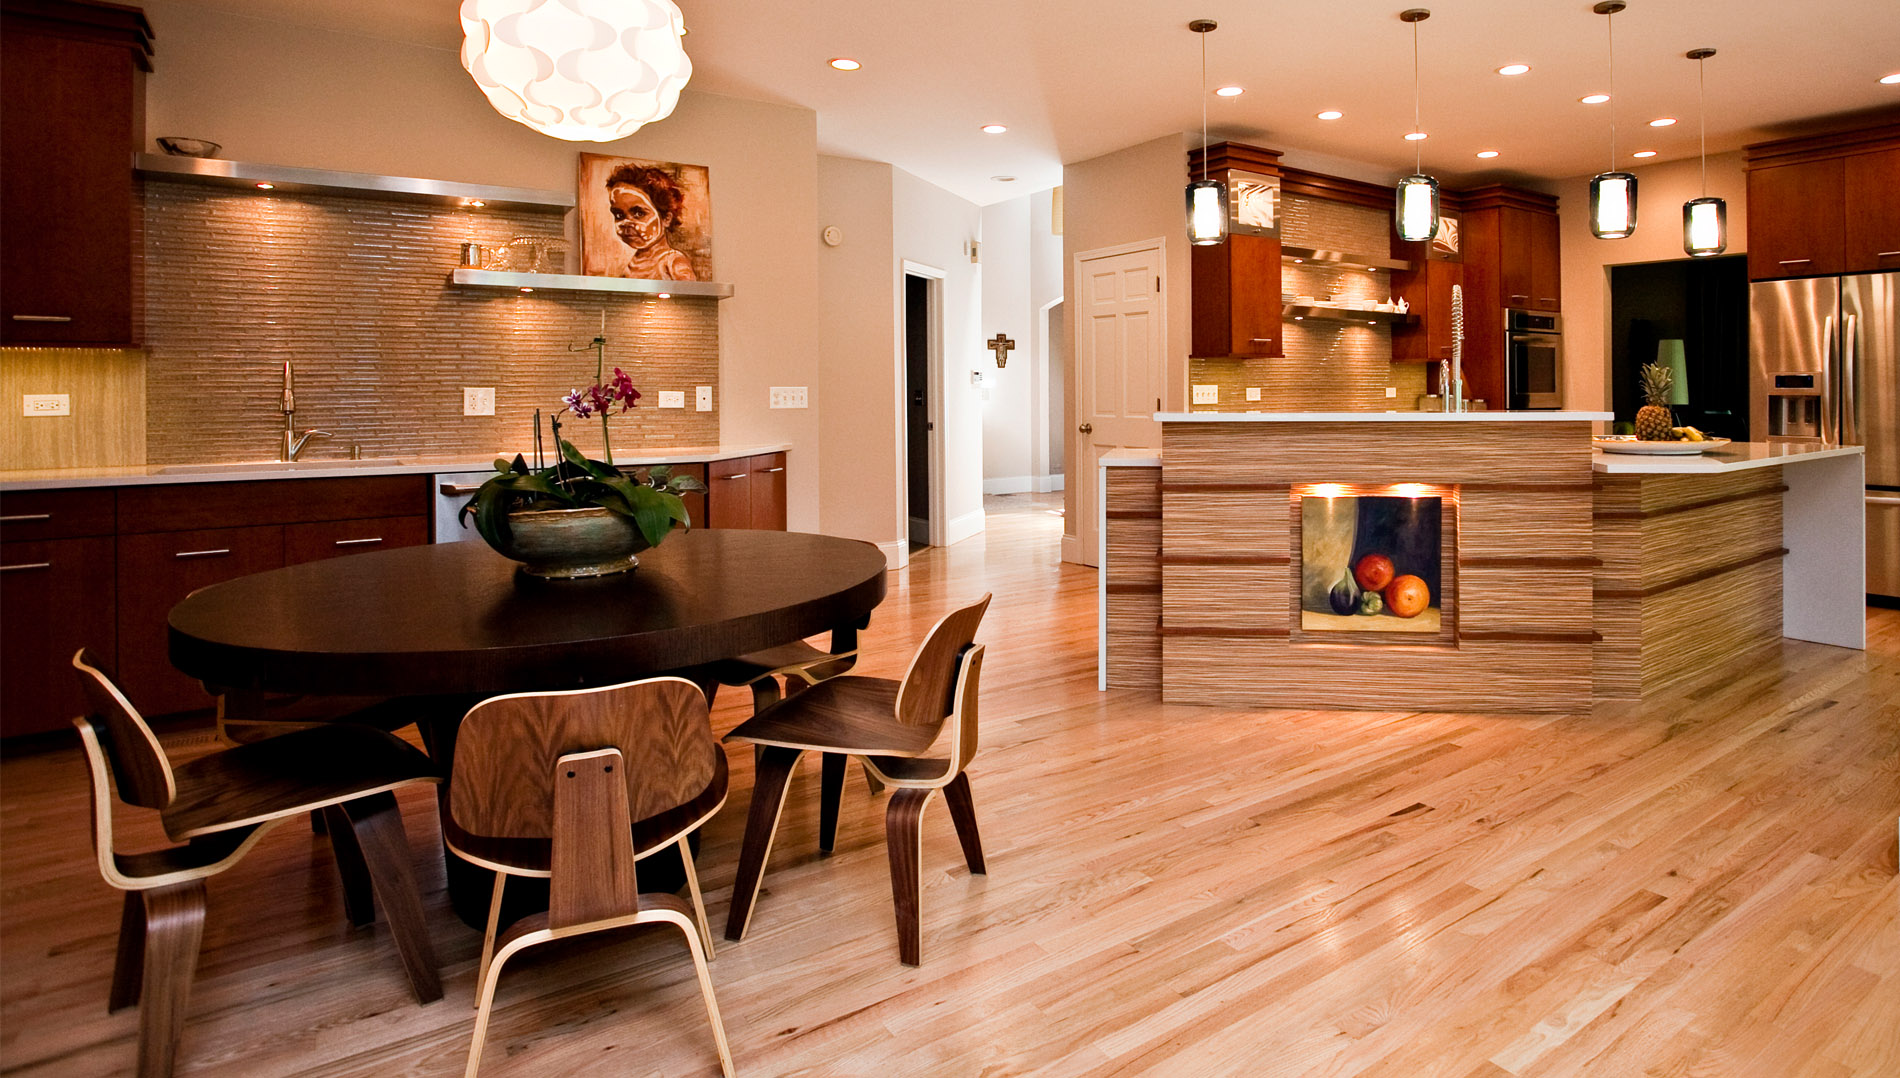 Large elongated kitchen with two distinct areas - cooking and baking.